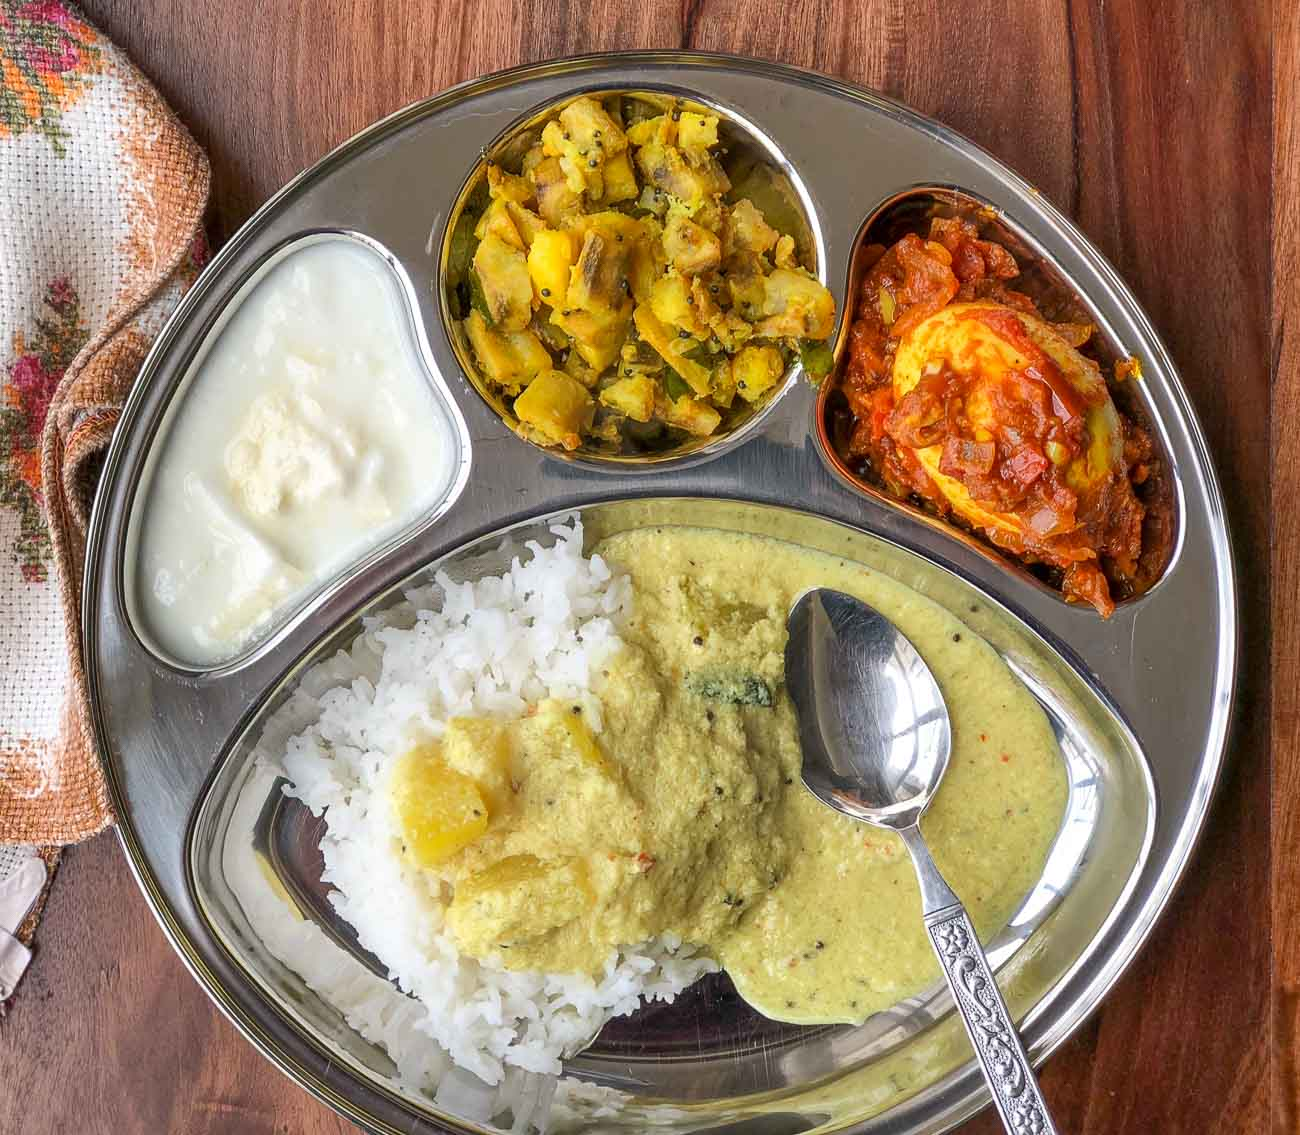 Portion Control Meal Plate Kerala PulisseryRaw Banana Thoran Egg Roast Rice u0026 Curd  sc 1 st  Archanau0027s Kitchen & Portion Control Meal Plate: Kerala PulisseryRaw Banana Thoran Egg ...